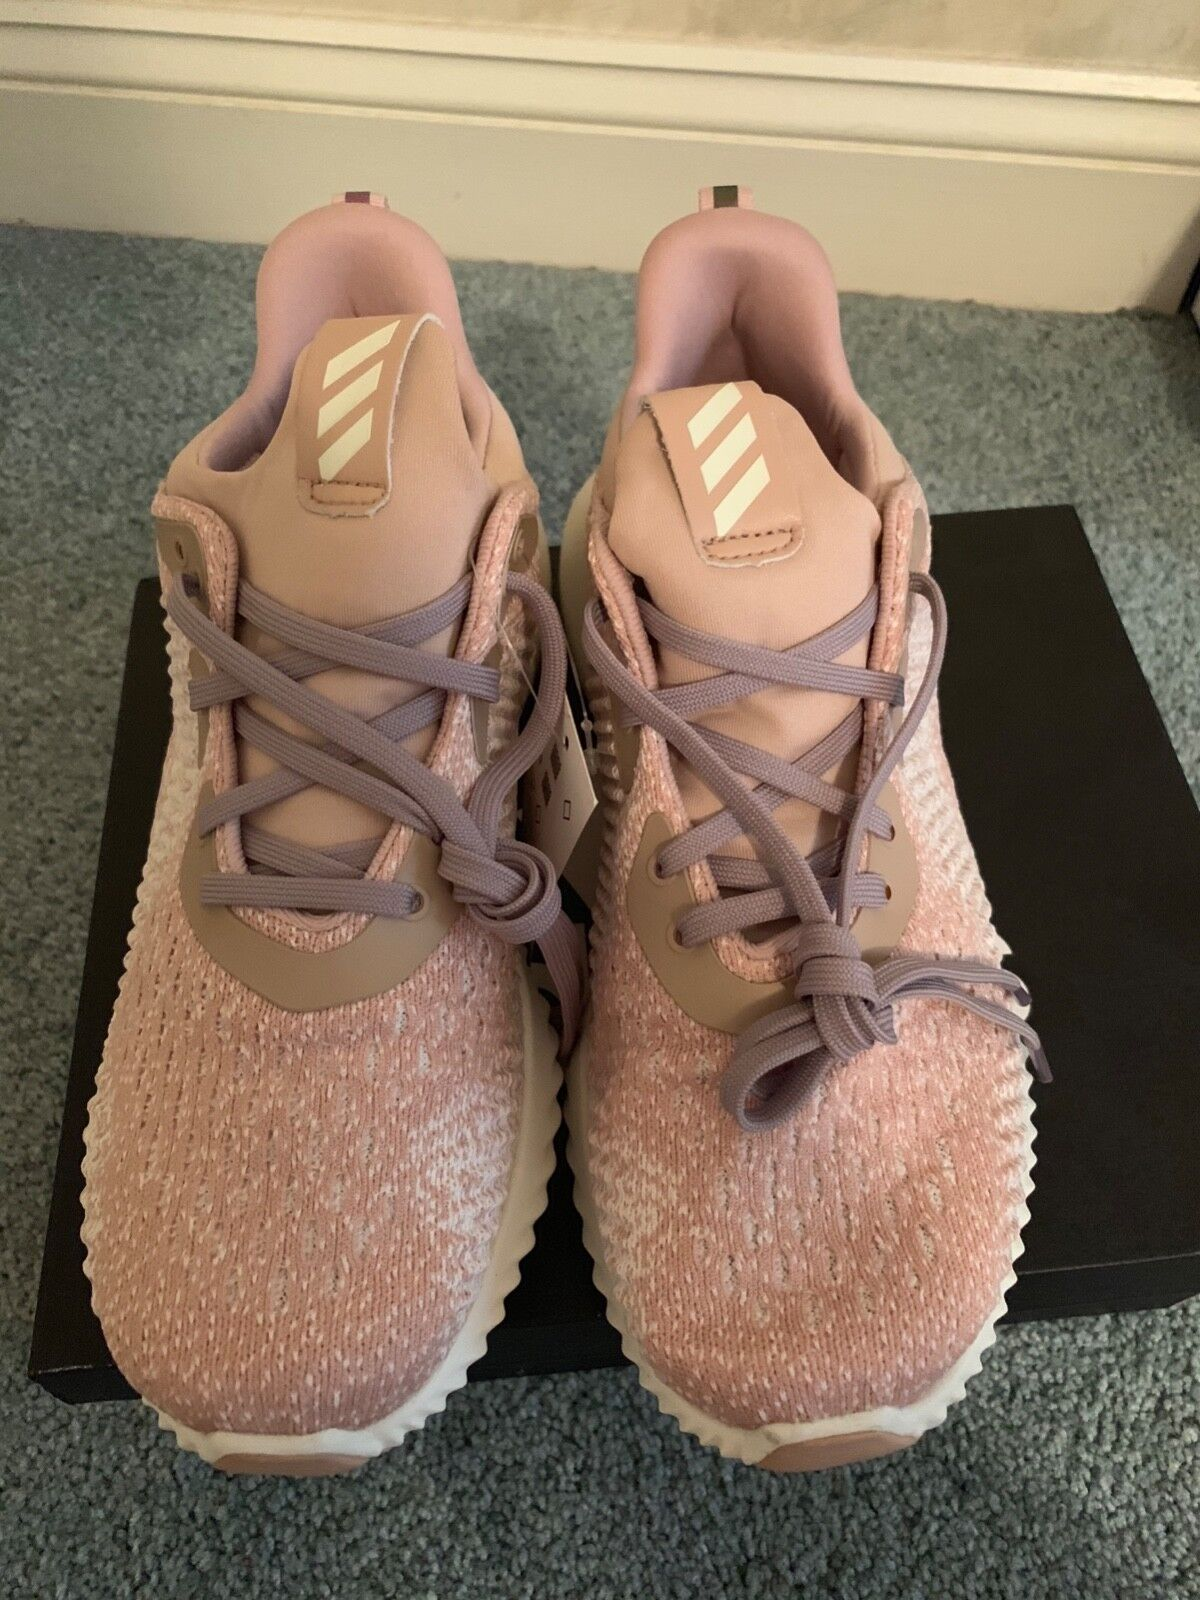 Adidas Women's Alphabounce size 7 tan colorway